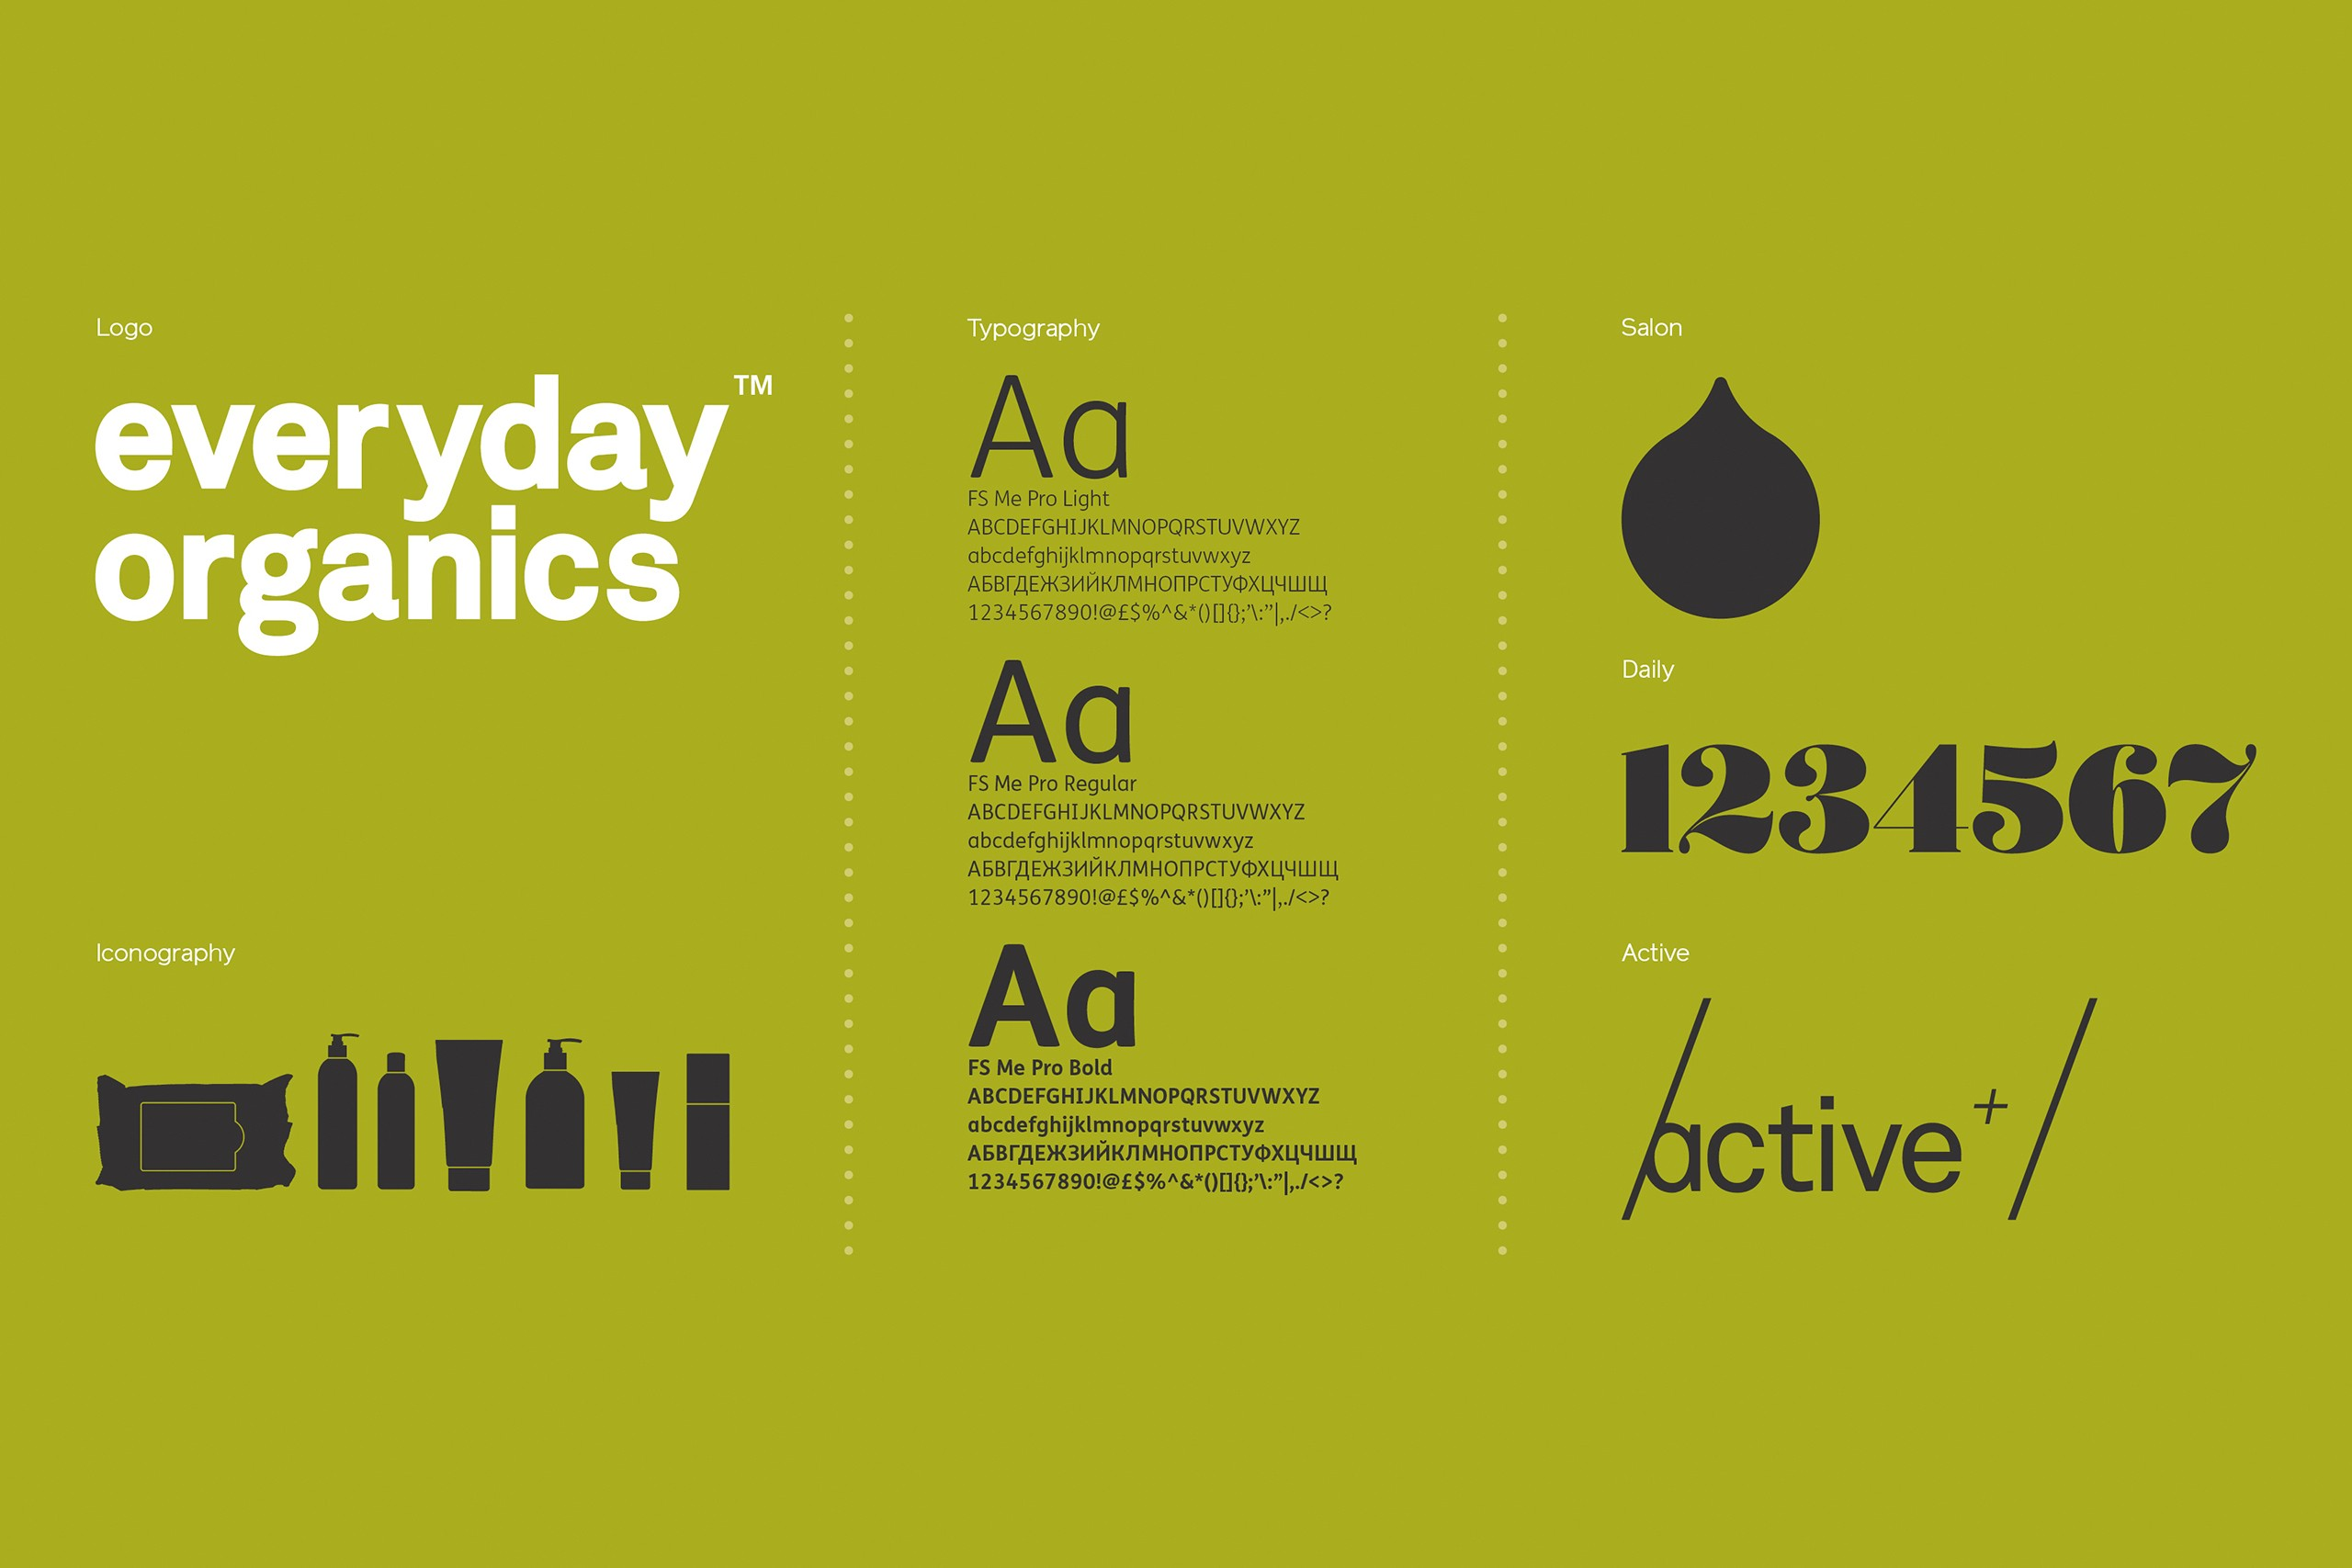 Everyday Organics  - Brand identity & packaging